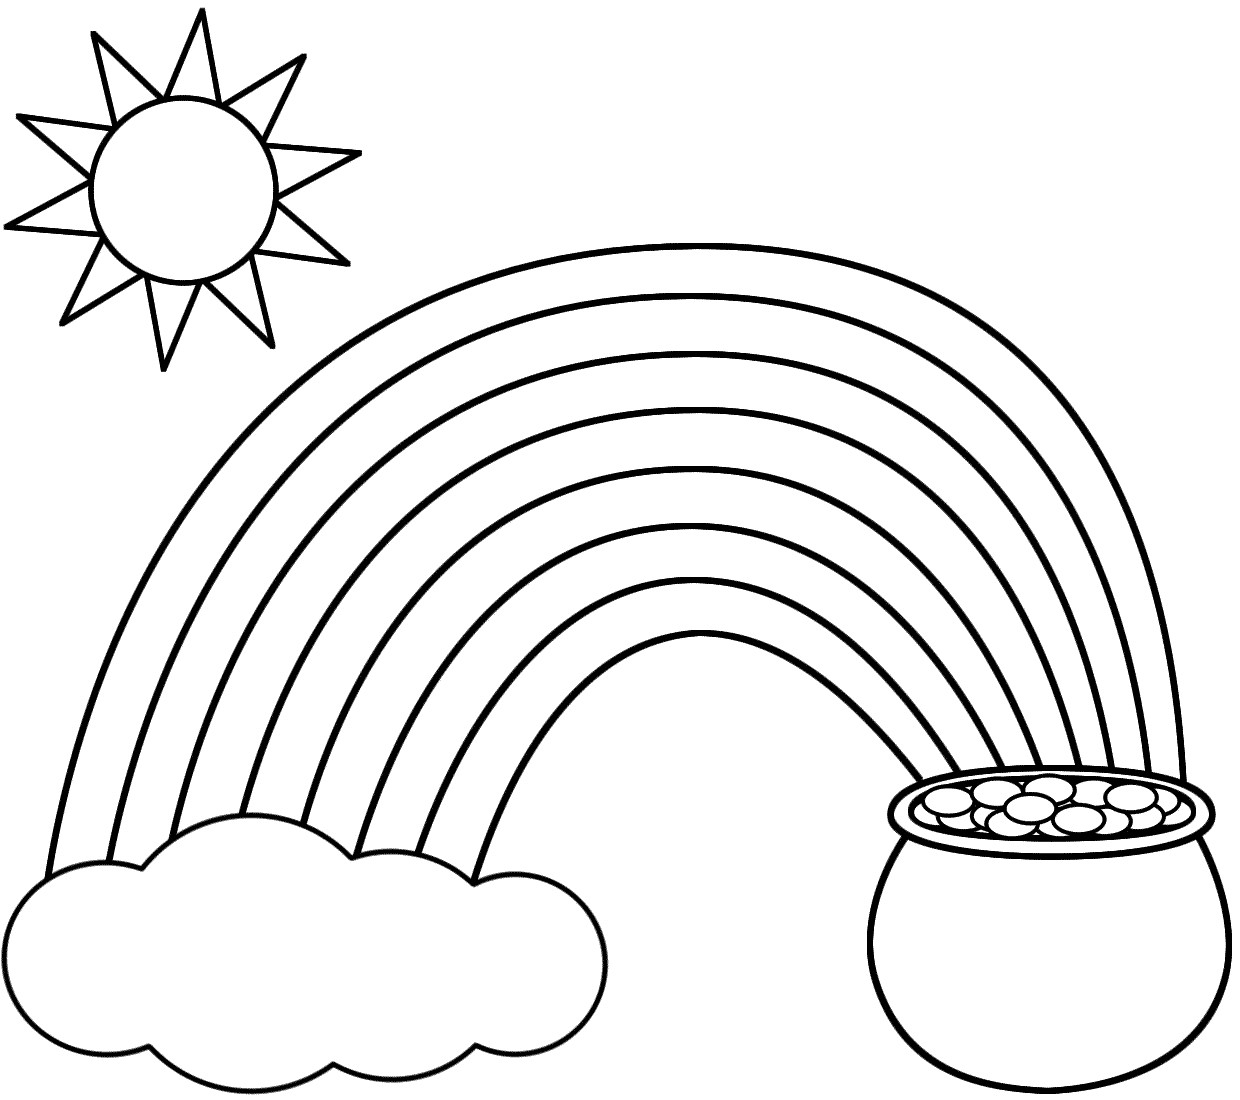 Rainbow Coloring Pages Free Printable Unique Rainbow Pot Of Gold Sun - Free Printable Rainbow Pictures